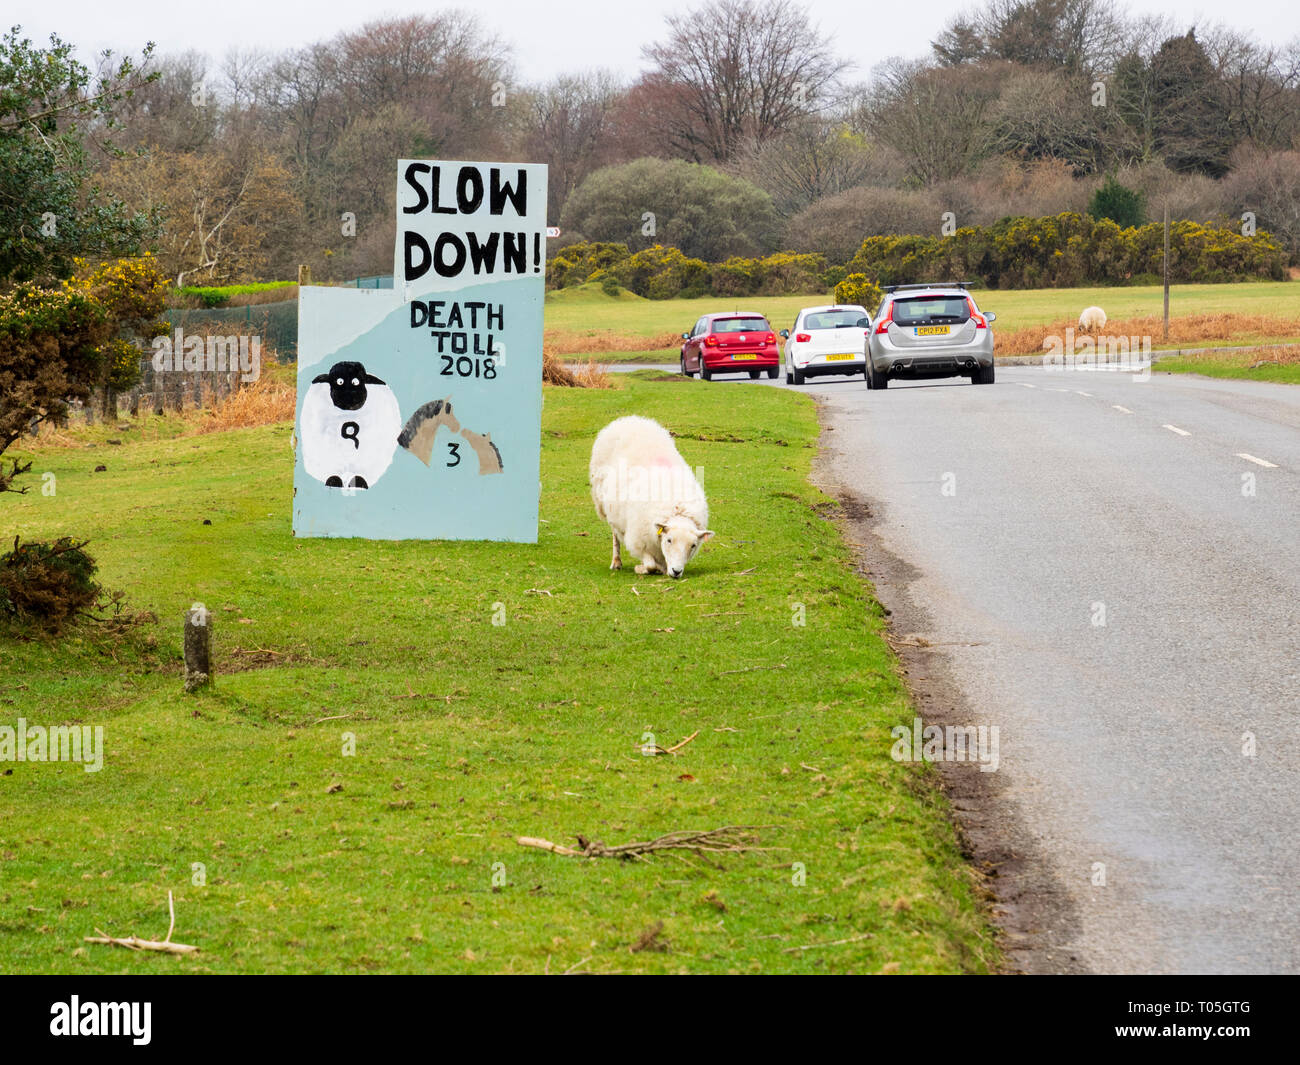 sheep-and-traffic-beside-warning-sign-with-animal-mortality-figures-on-unfenced-road-at-roborough-down-dartmoor-uk-T05GTG.jpg